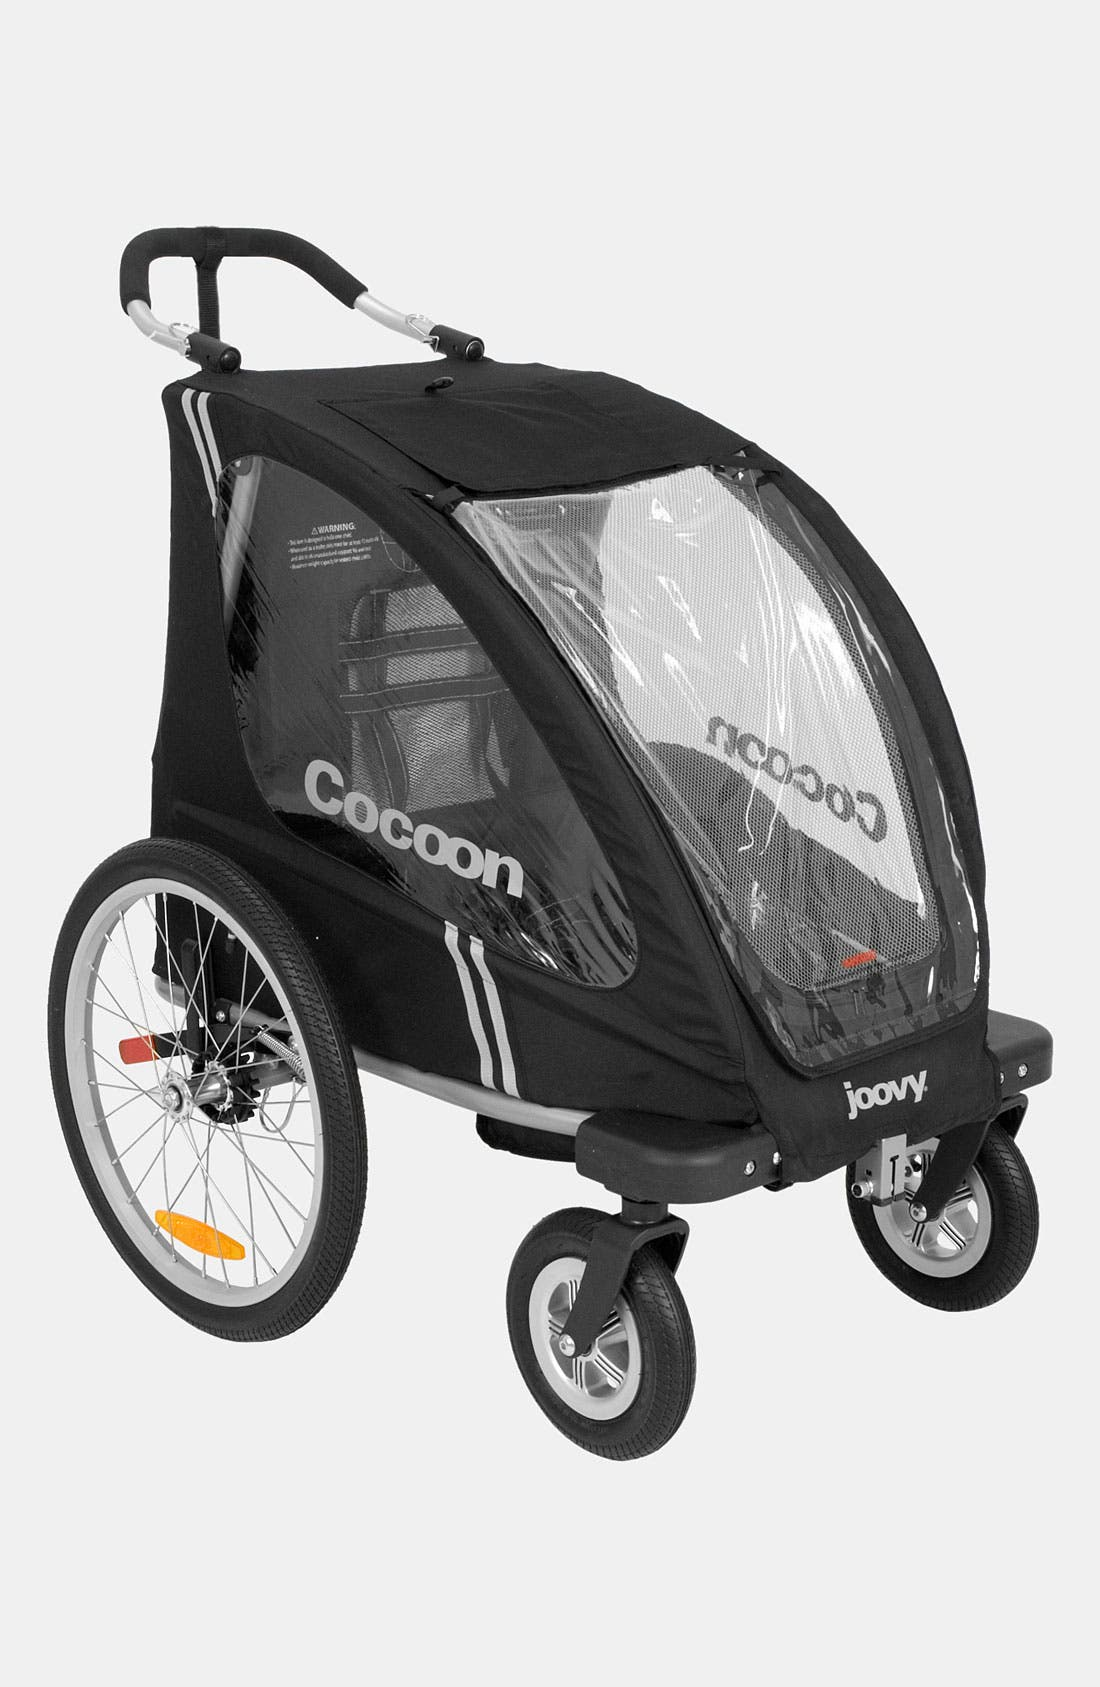 Main Image - Joovy 'Cocoon' Single Stroller